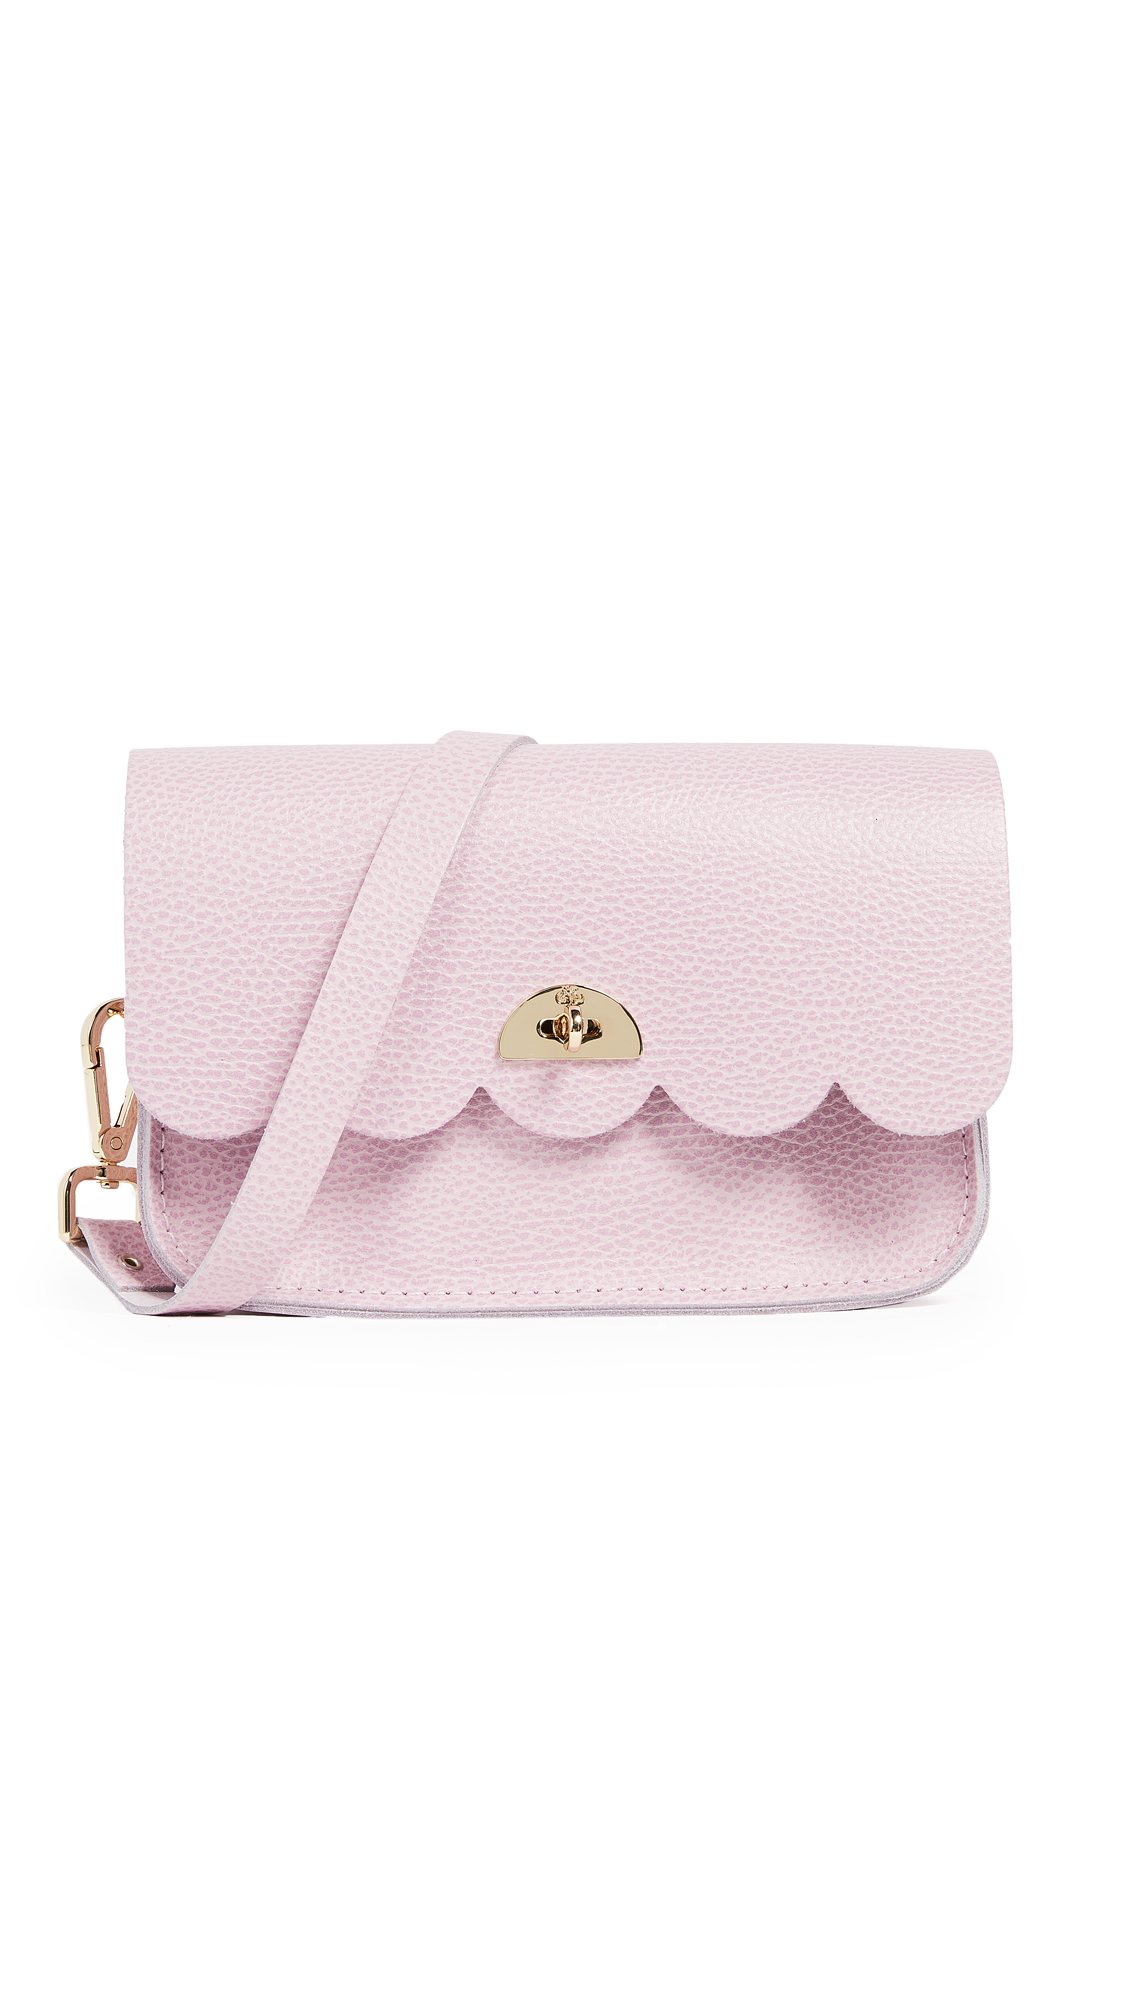 Cambridge Satchel Small Cloud Bag